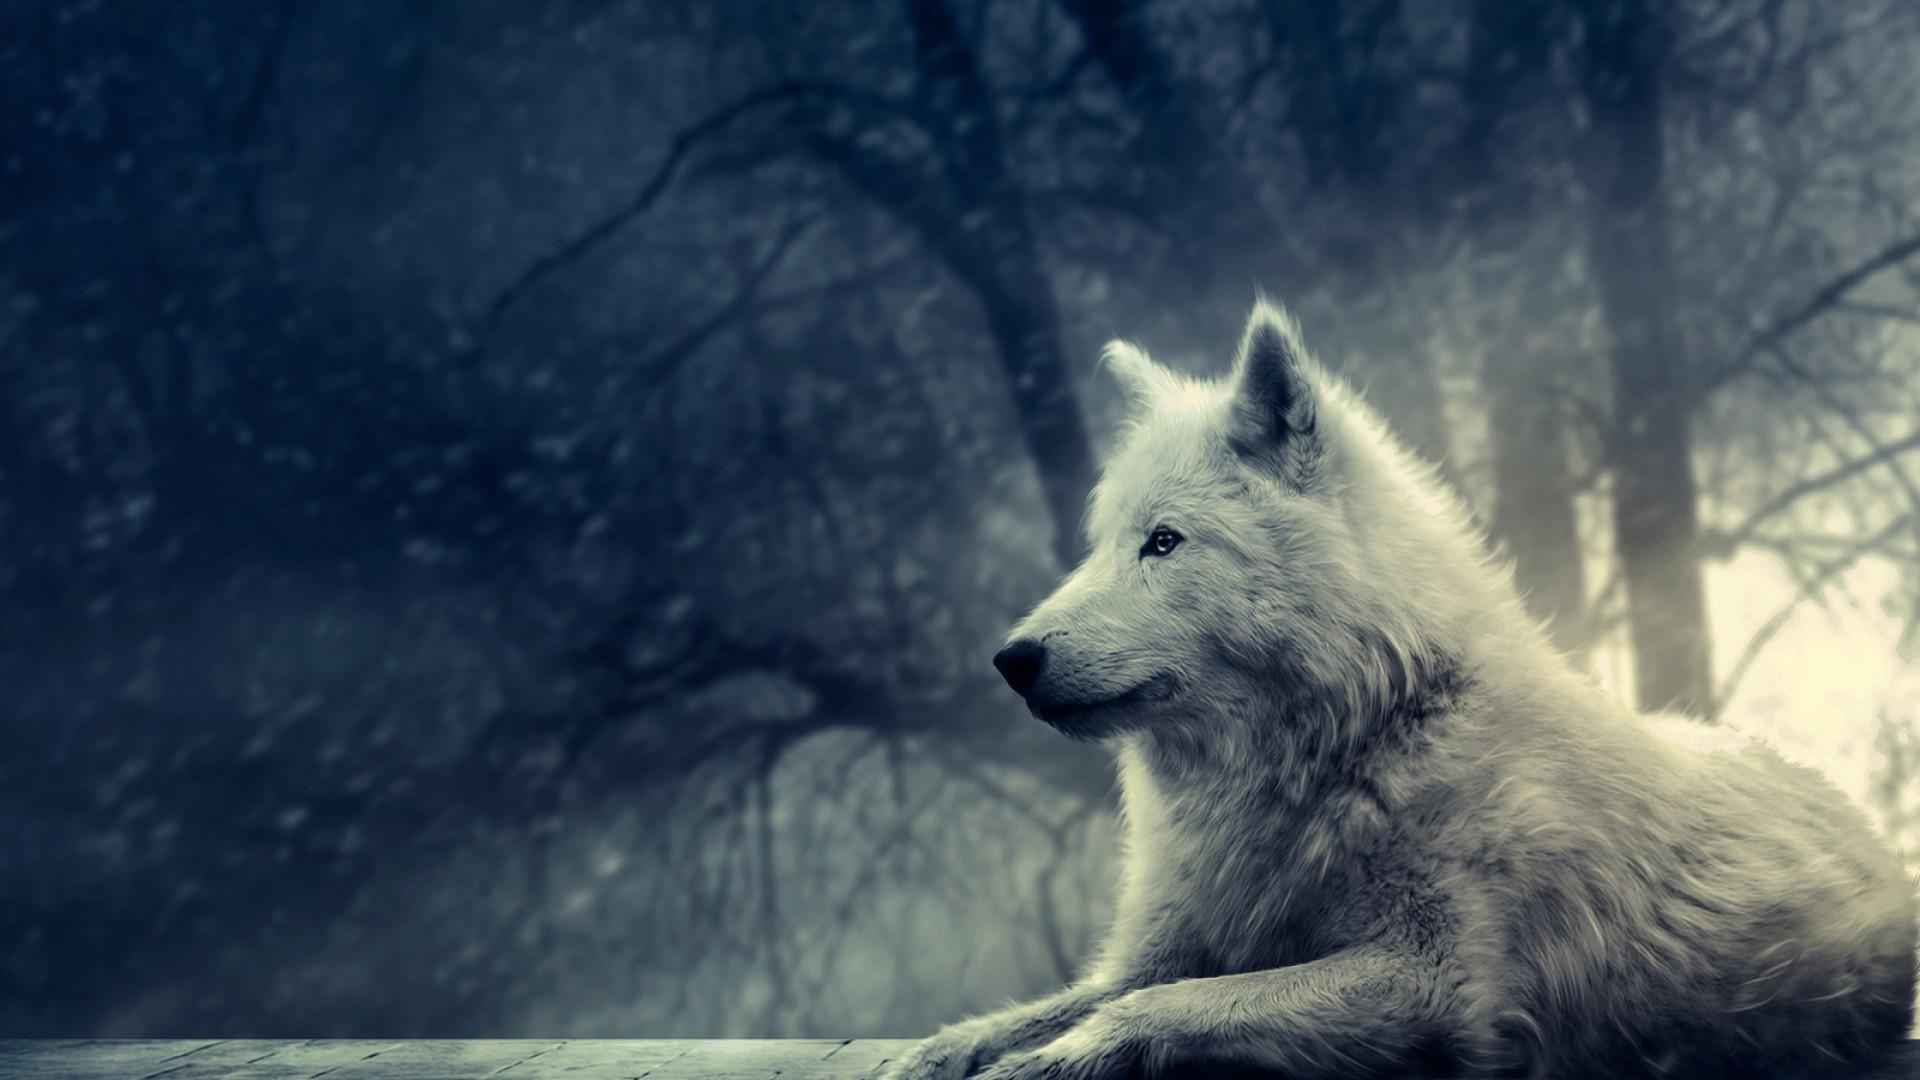 Hd wallpaper wolf - Wolf Hd Wallpapers 1080p Desktop Backgrounds